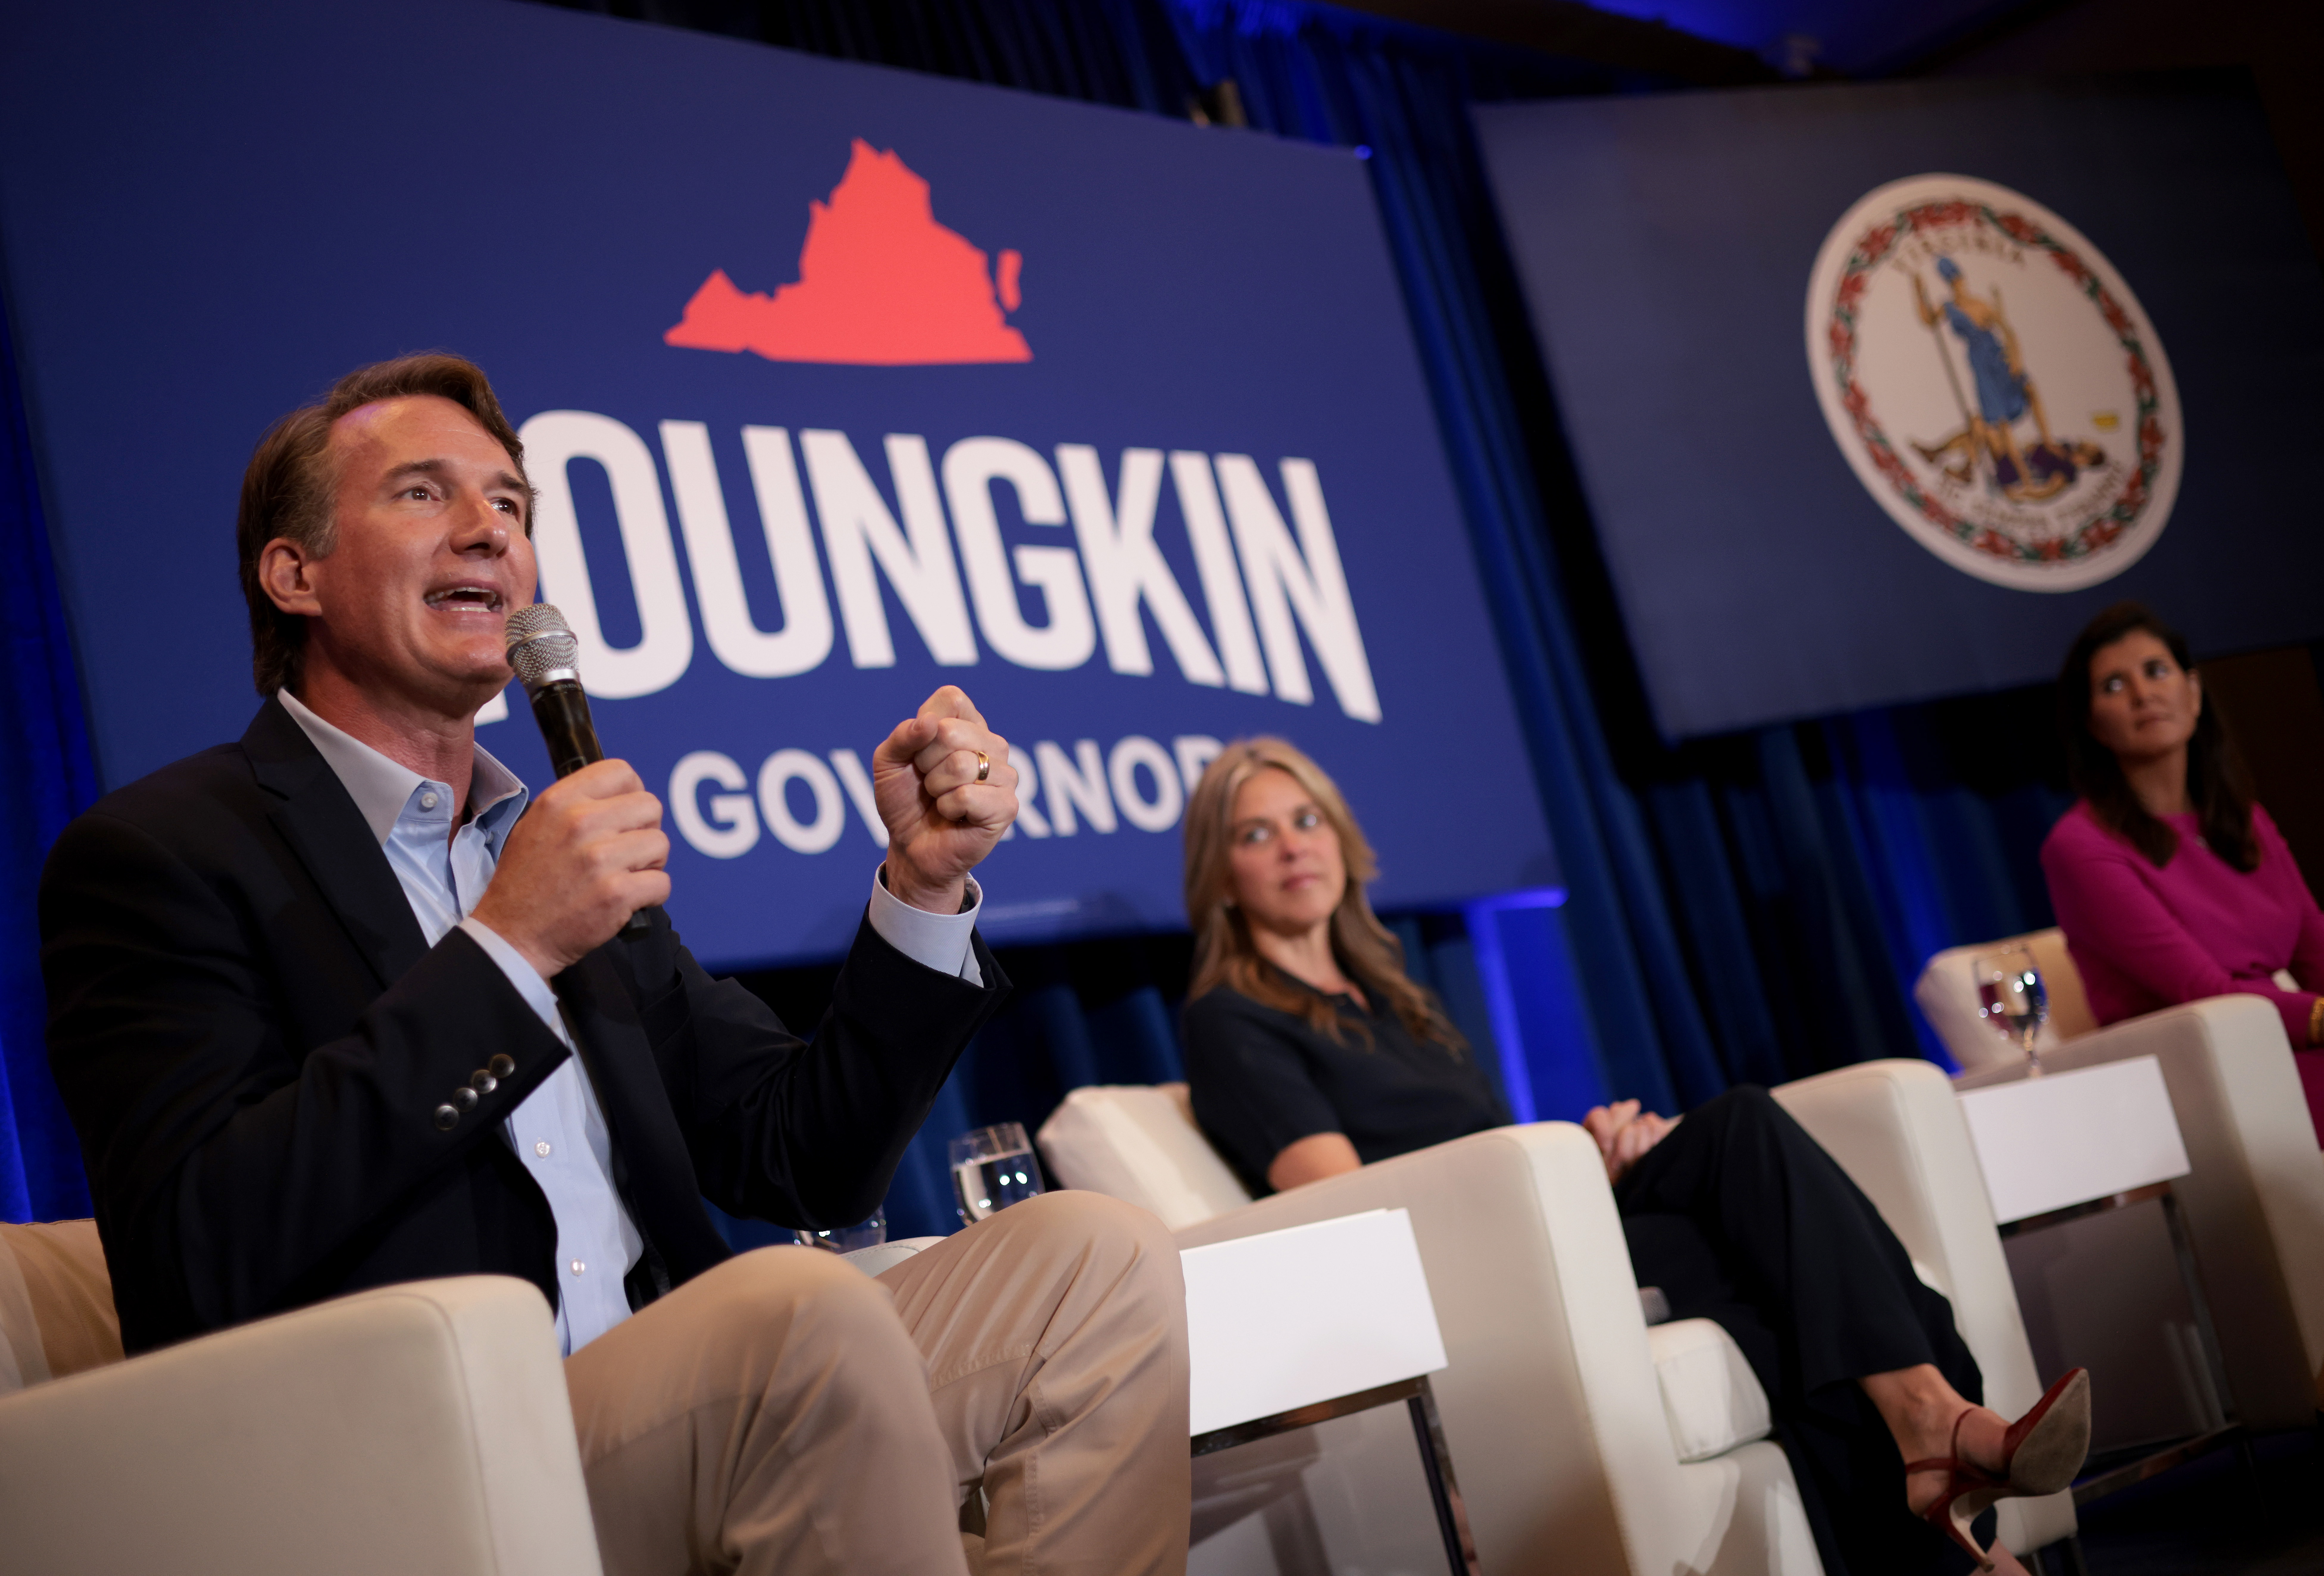 MCLEAN, VIRGINIA - JULY 14: Virginia gubernatorial candidate Glenn Youngkin (R-VA) speaks during a campaign event with his wife, Suzanne (C), and former South Carlina Gov. Nikki Haley (R) July 14, 2021 in McLean, Virginia. Youngkin is running against former Virginia Gov. Terry McAuliffe. (Photo by Win McNamee/Getty Images)